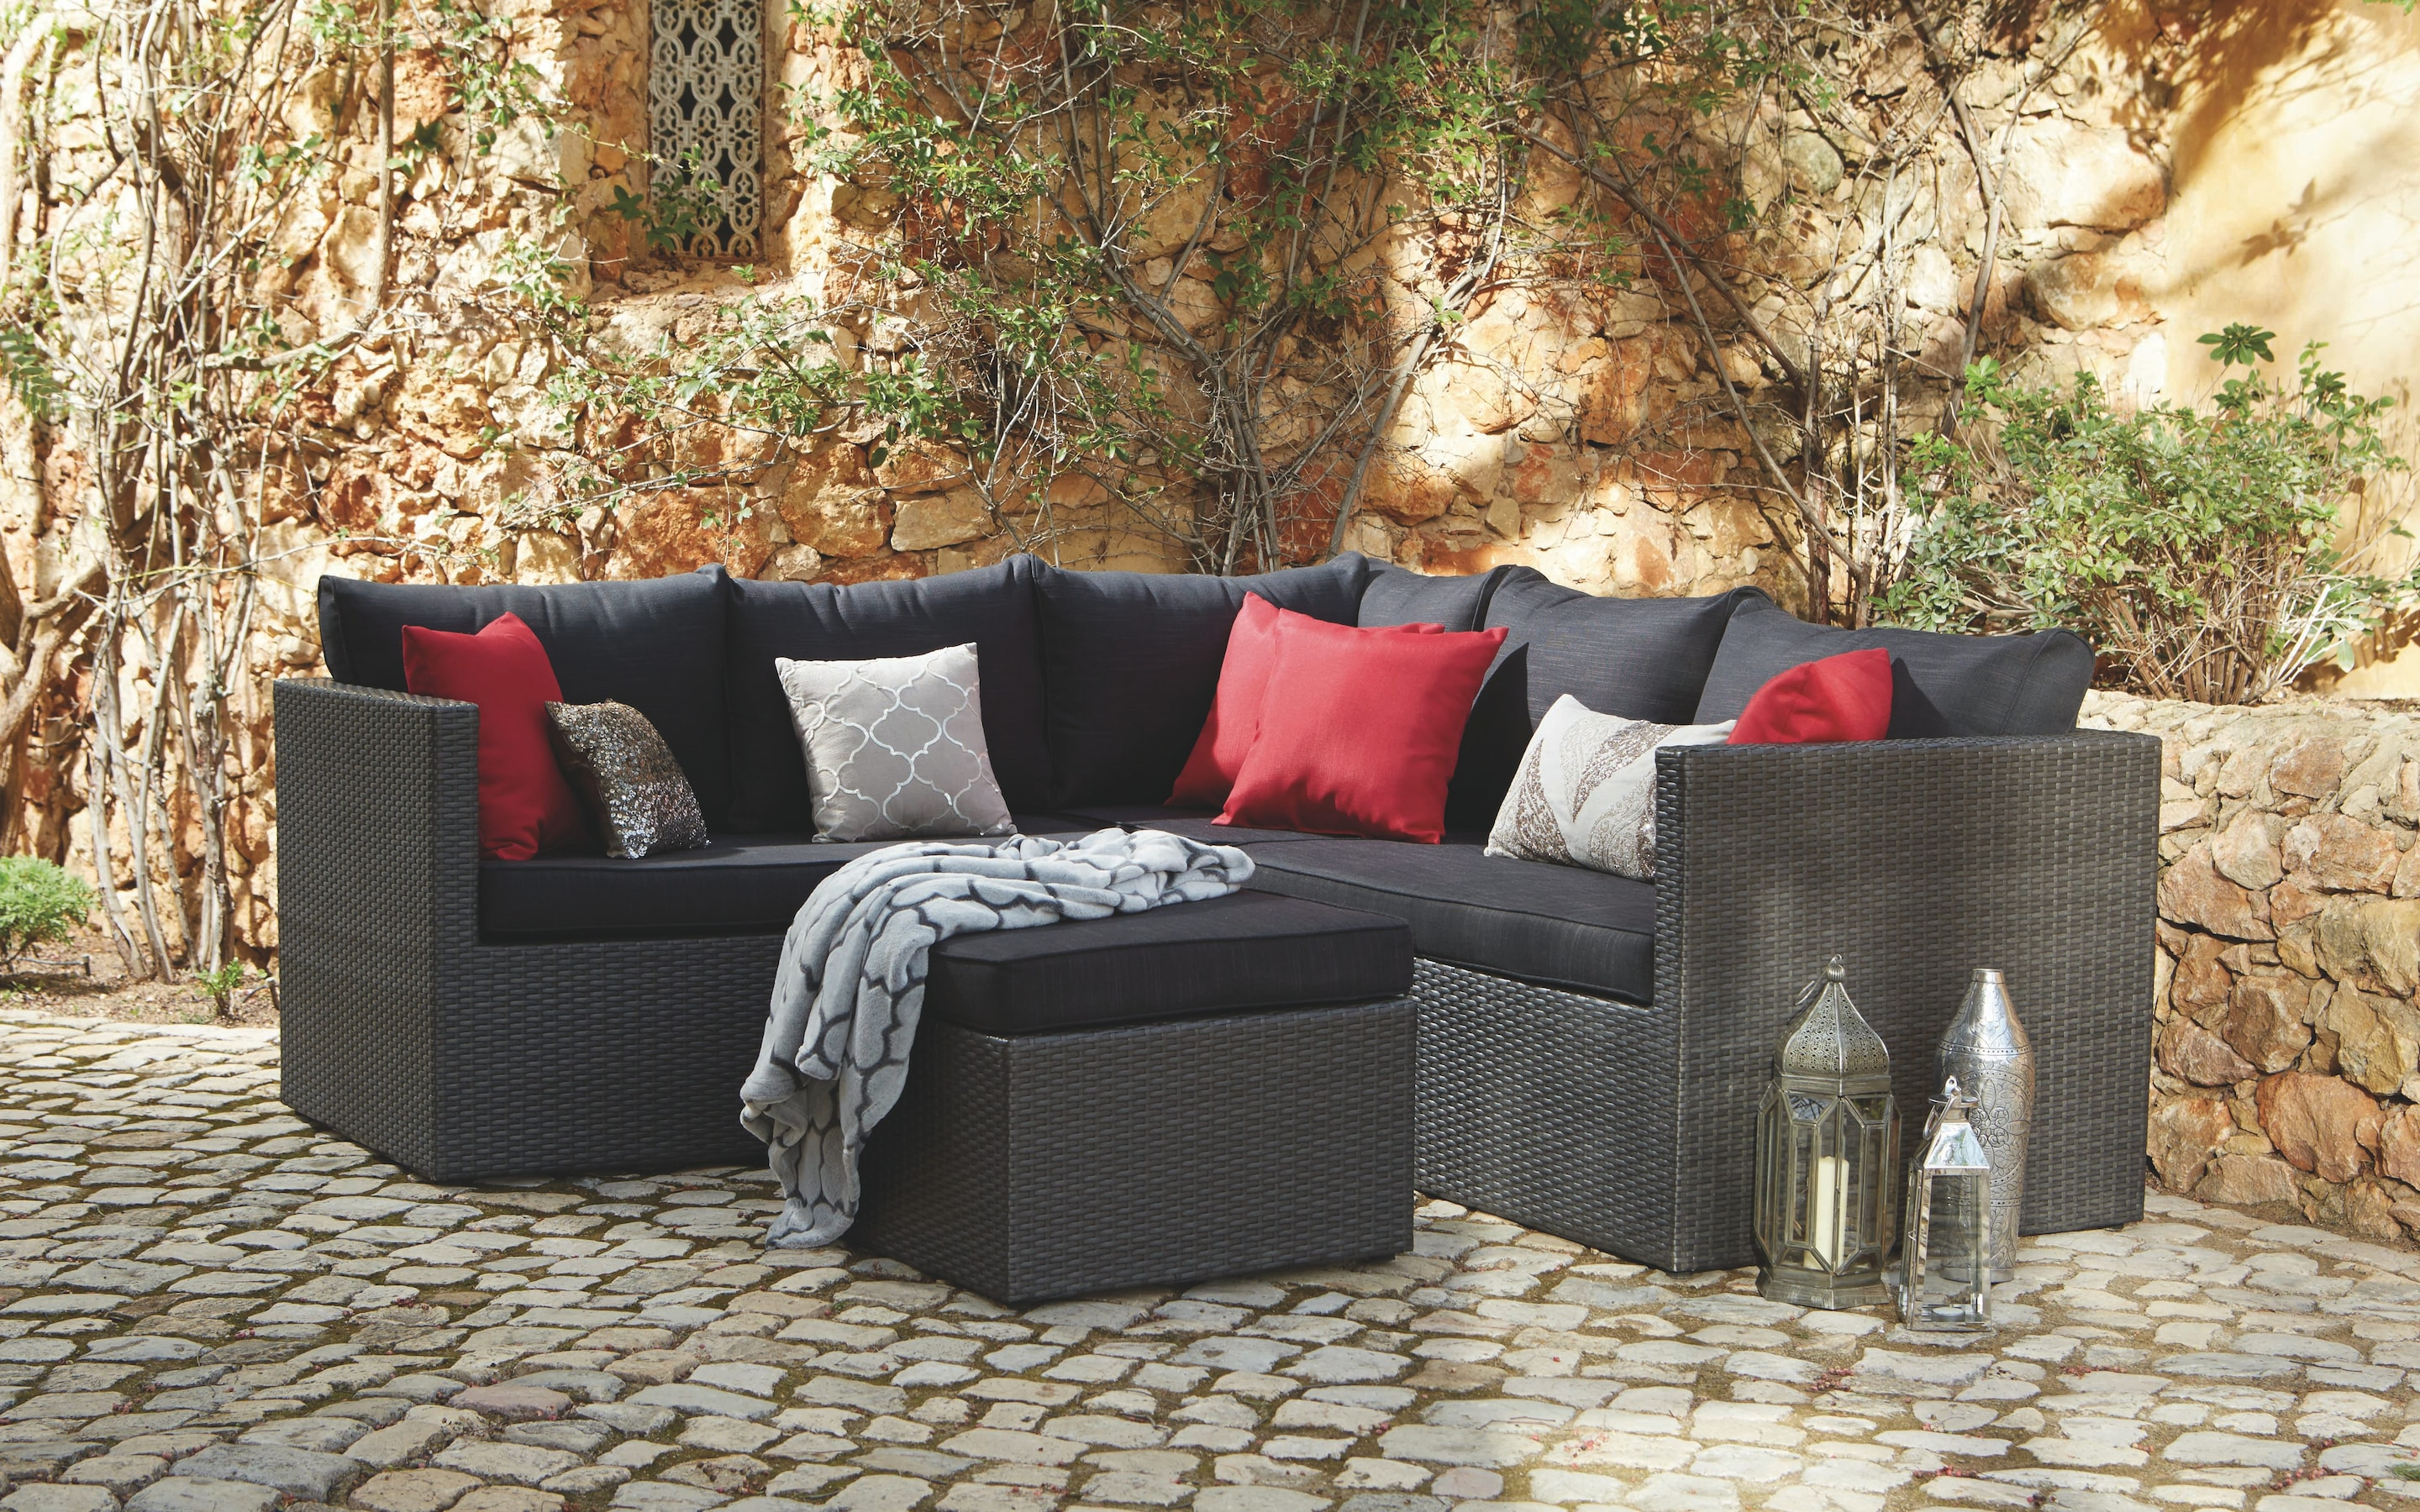 rattan sofa set uk cover for leather getting your garden furniture right with the telegraph balinese dunelm